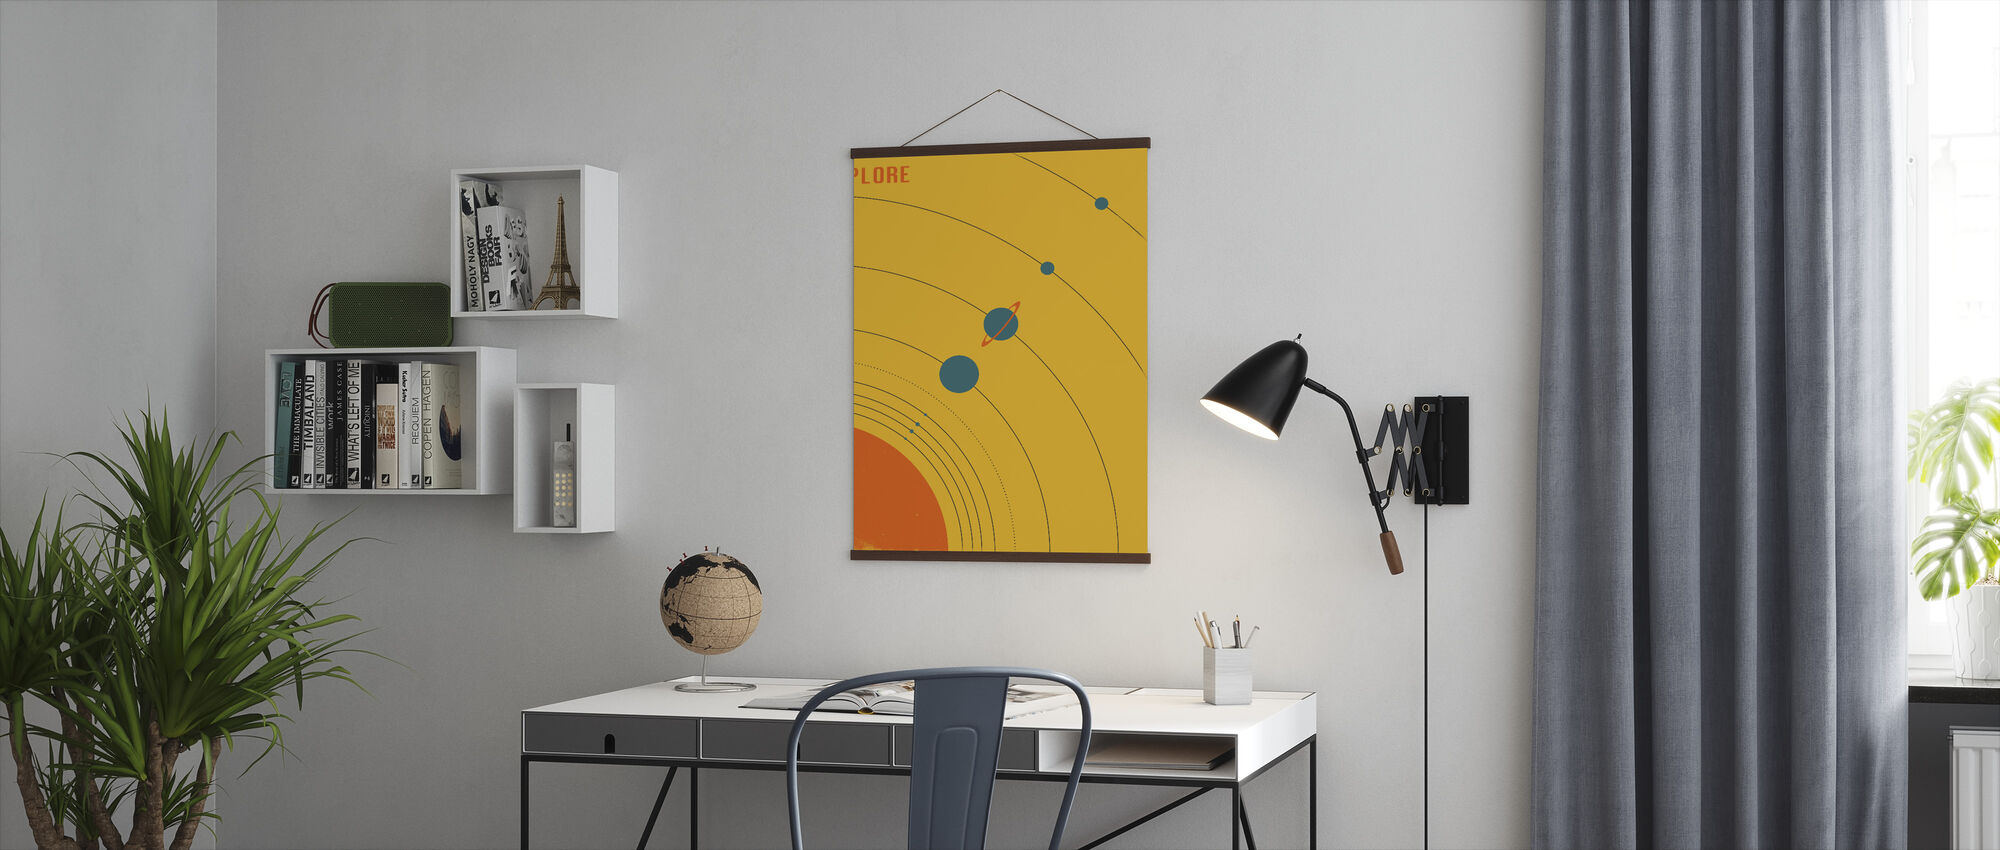 Solar System - Explore - Poster - Office